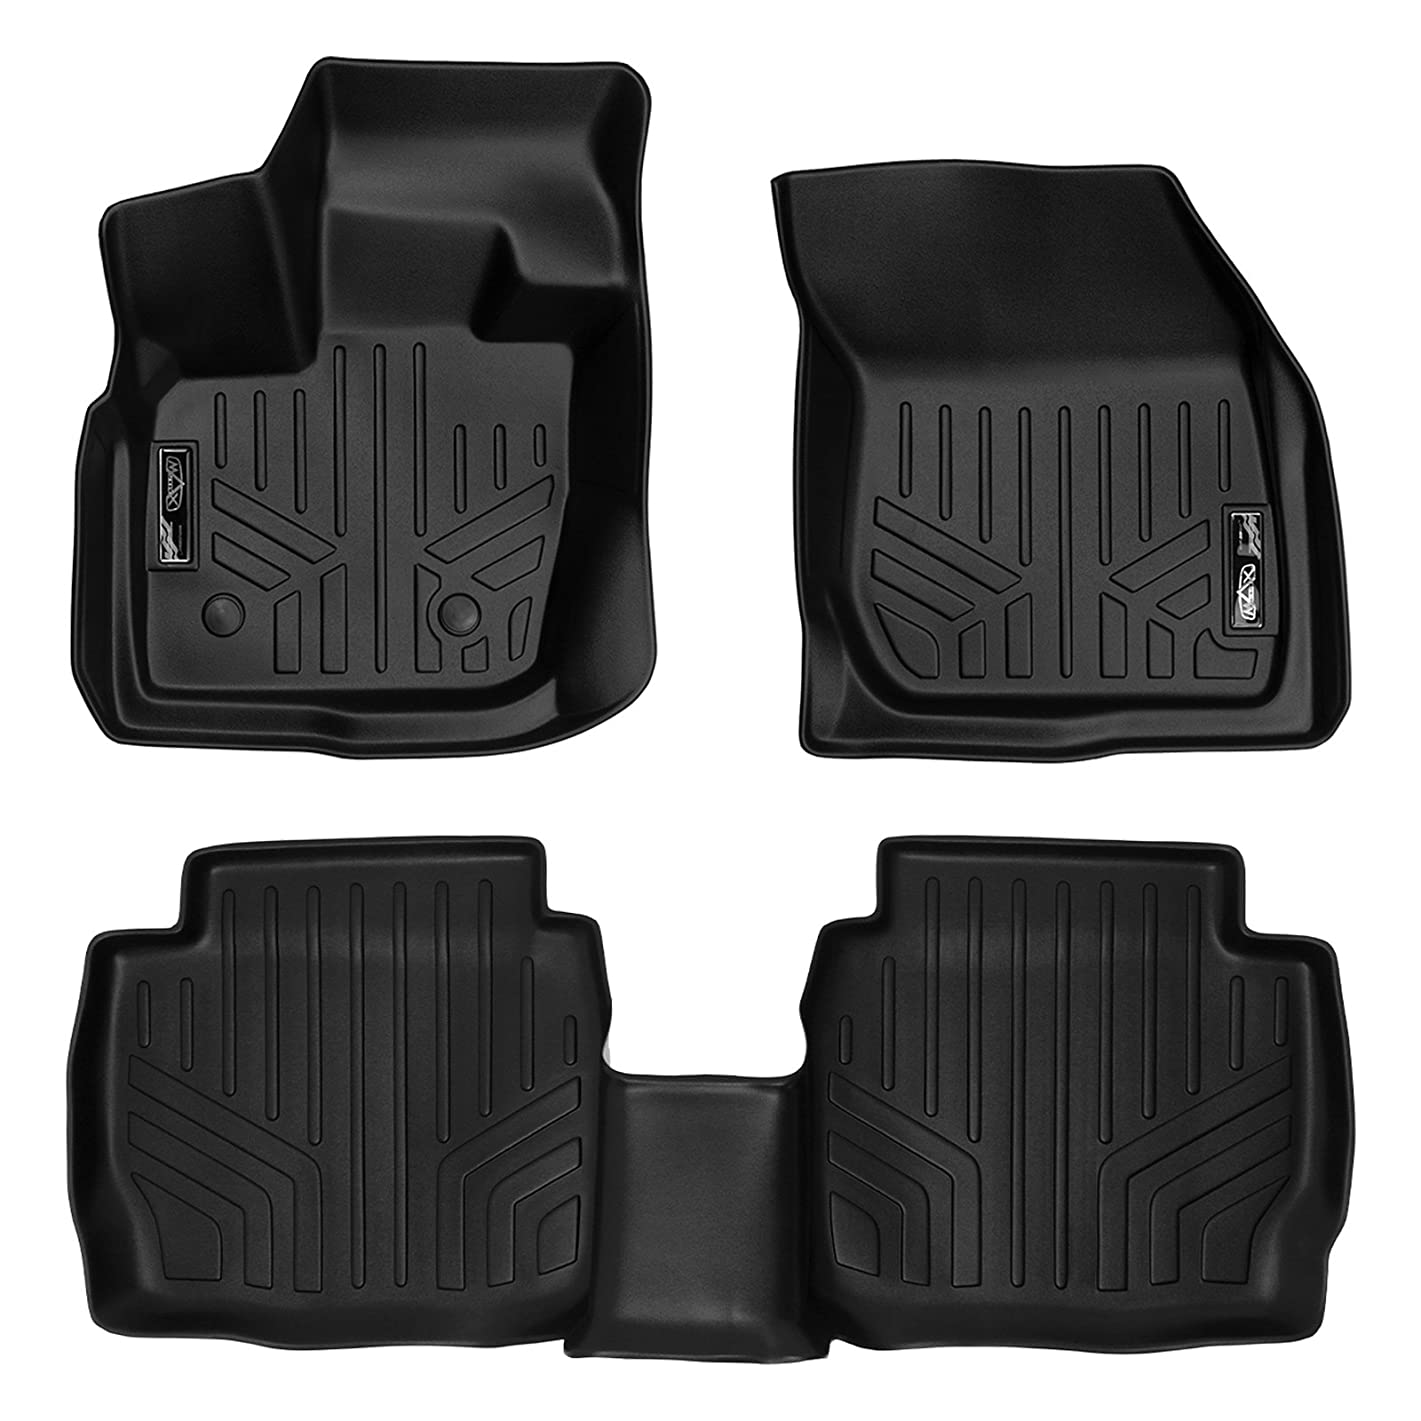 MAX LINER A0260/B0133 Custom Fit Floor Mats 2 Row Liner Set Black for 2017-2019 Ford Fusion/Lincoln MKZ